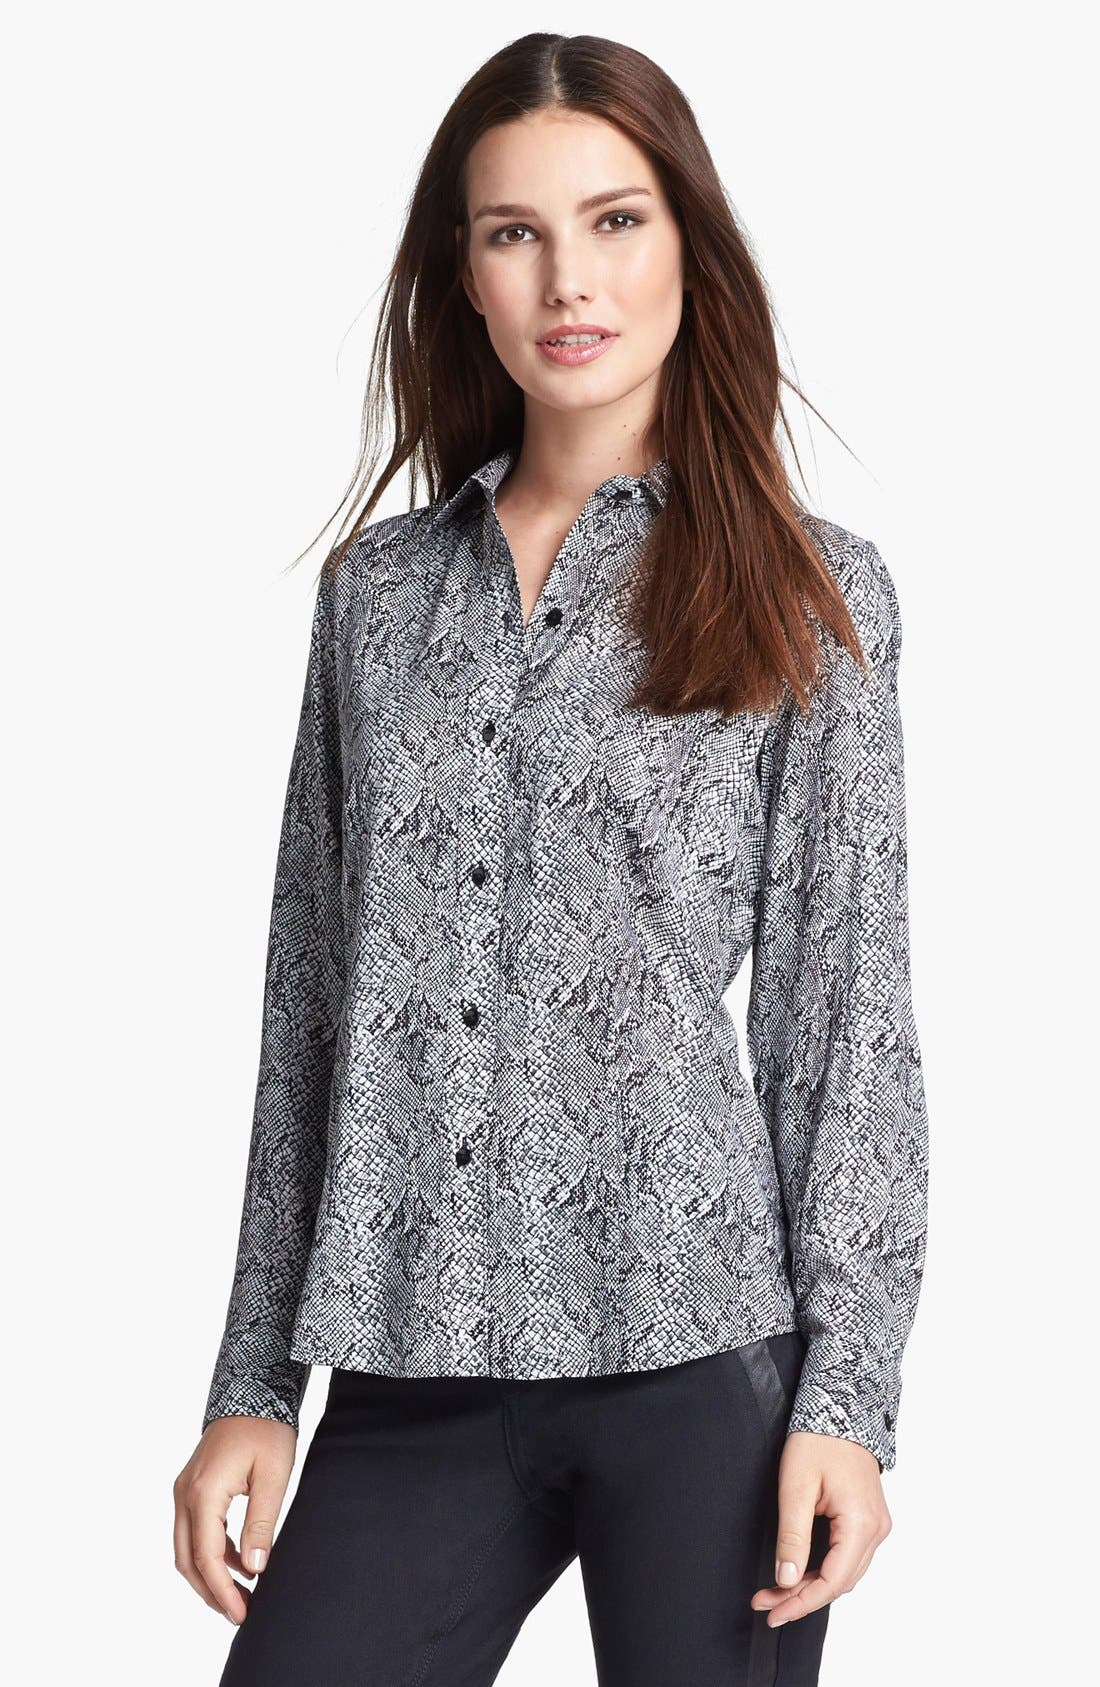 Alternate Image 1 Selected - Foxcroft 'Silver Snake' Shirt (Petite)